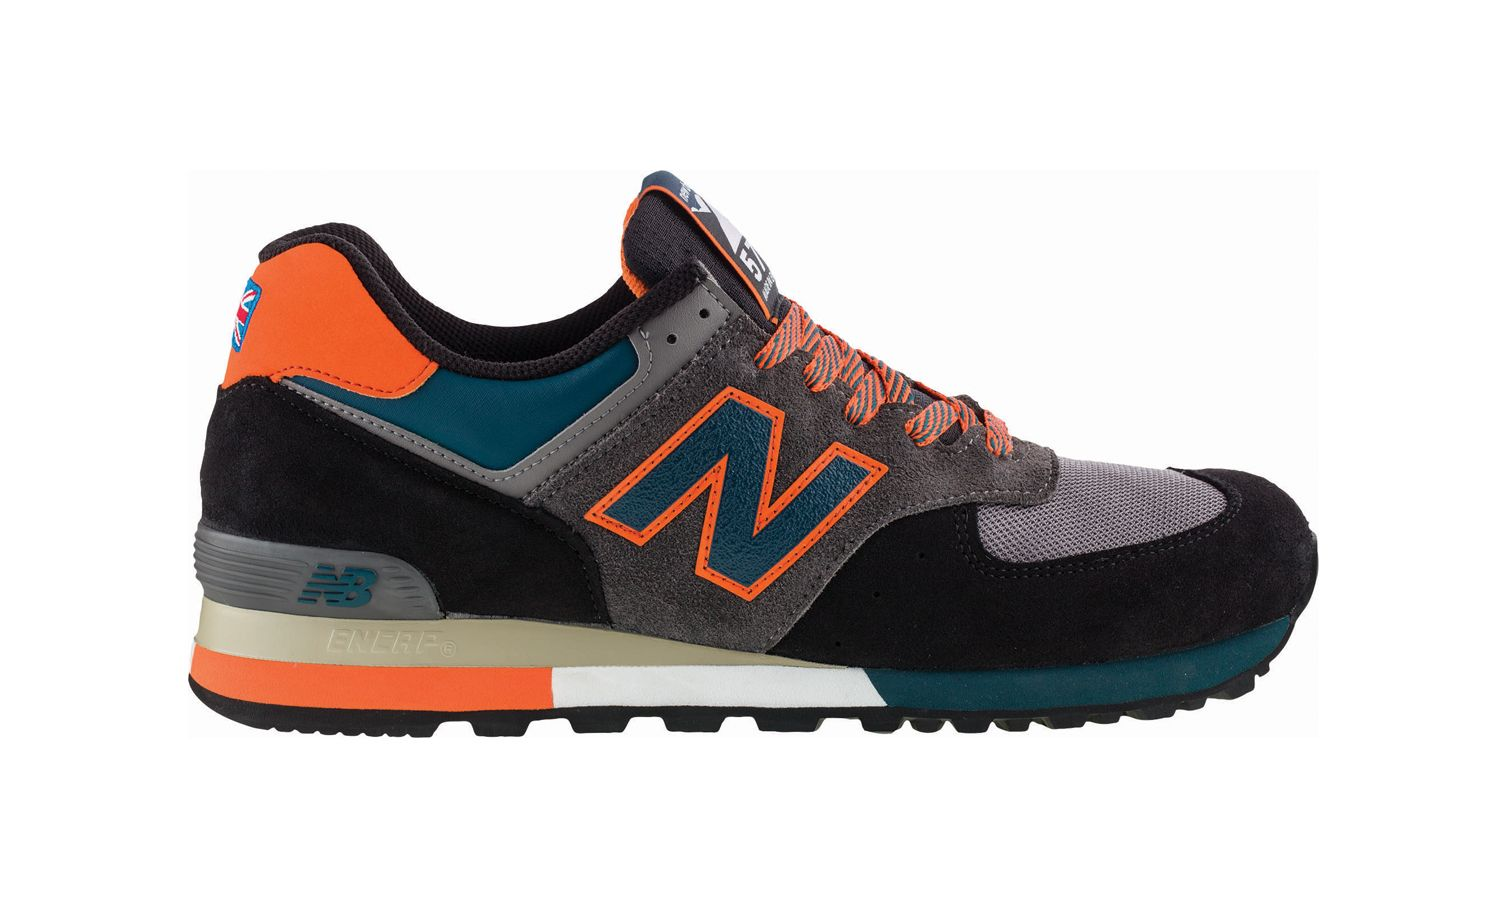 New Balance 576 Three Peaks Made in UK